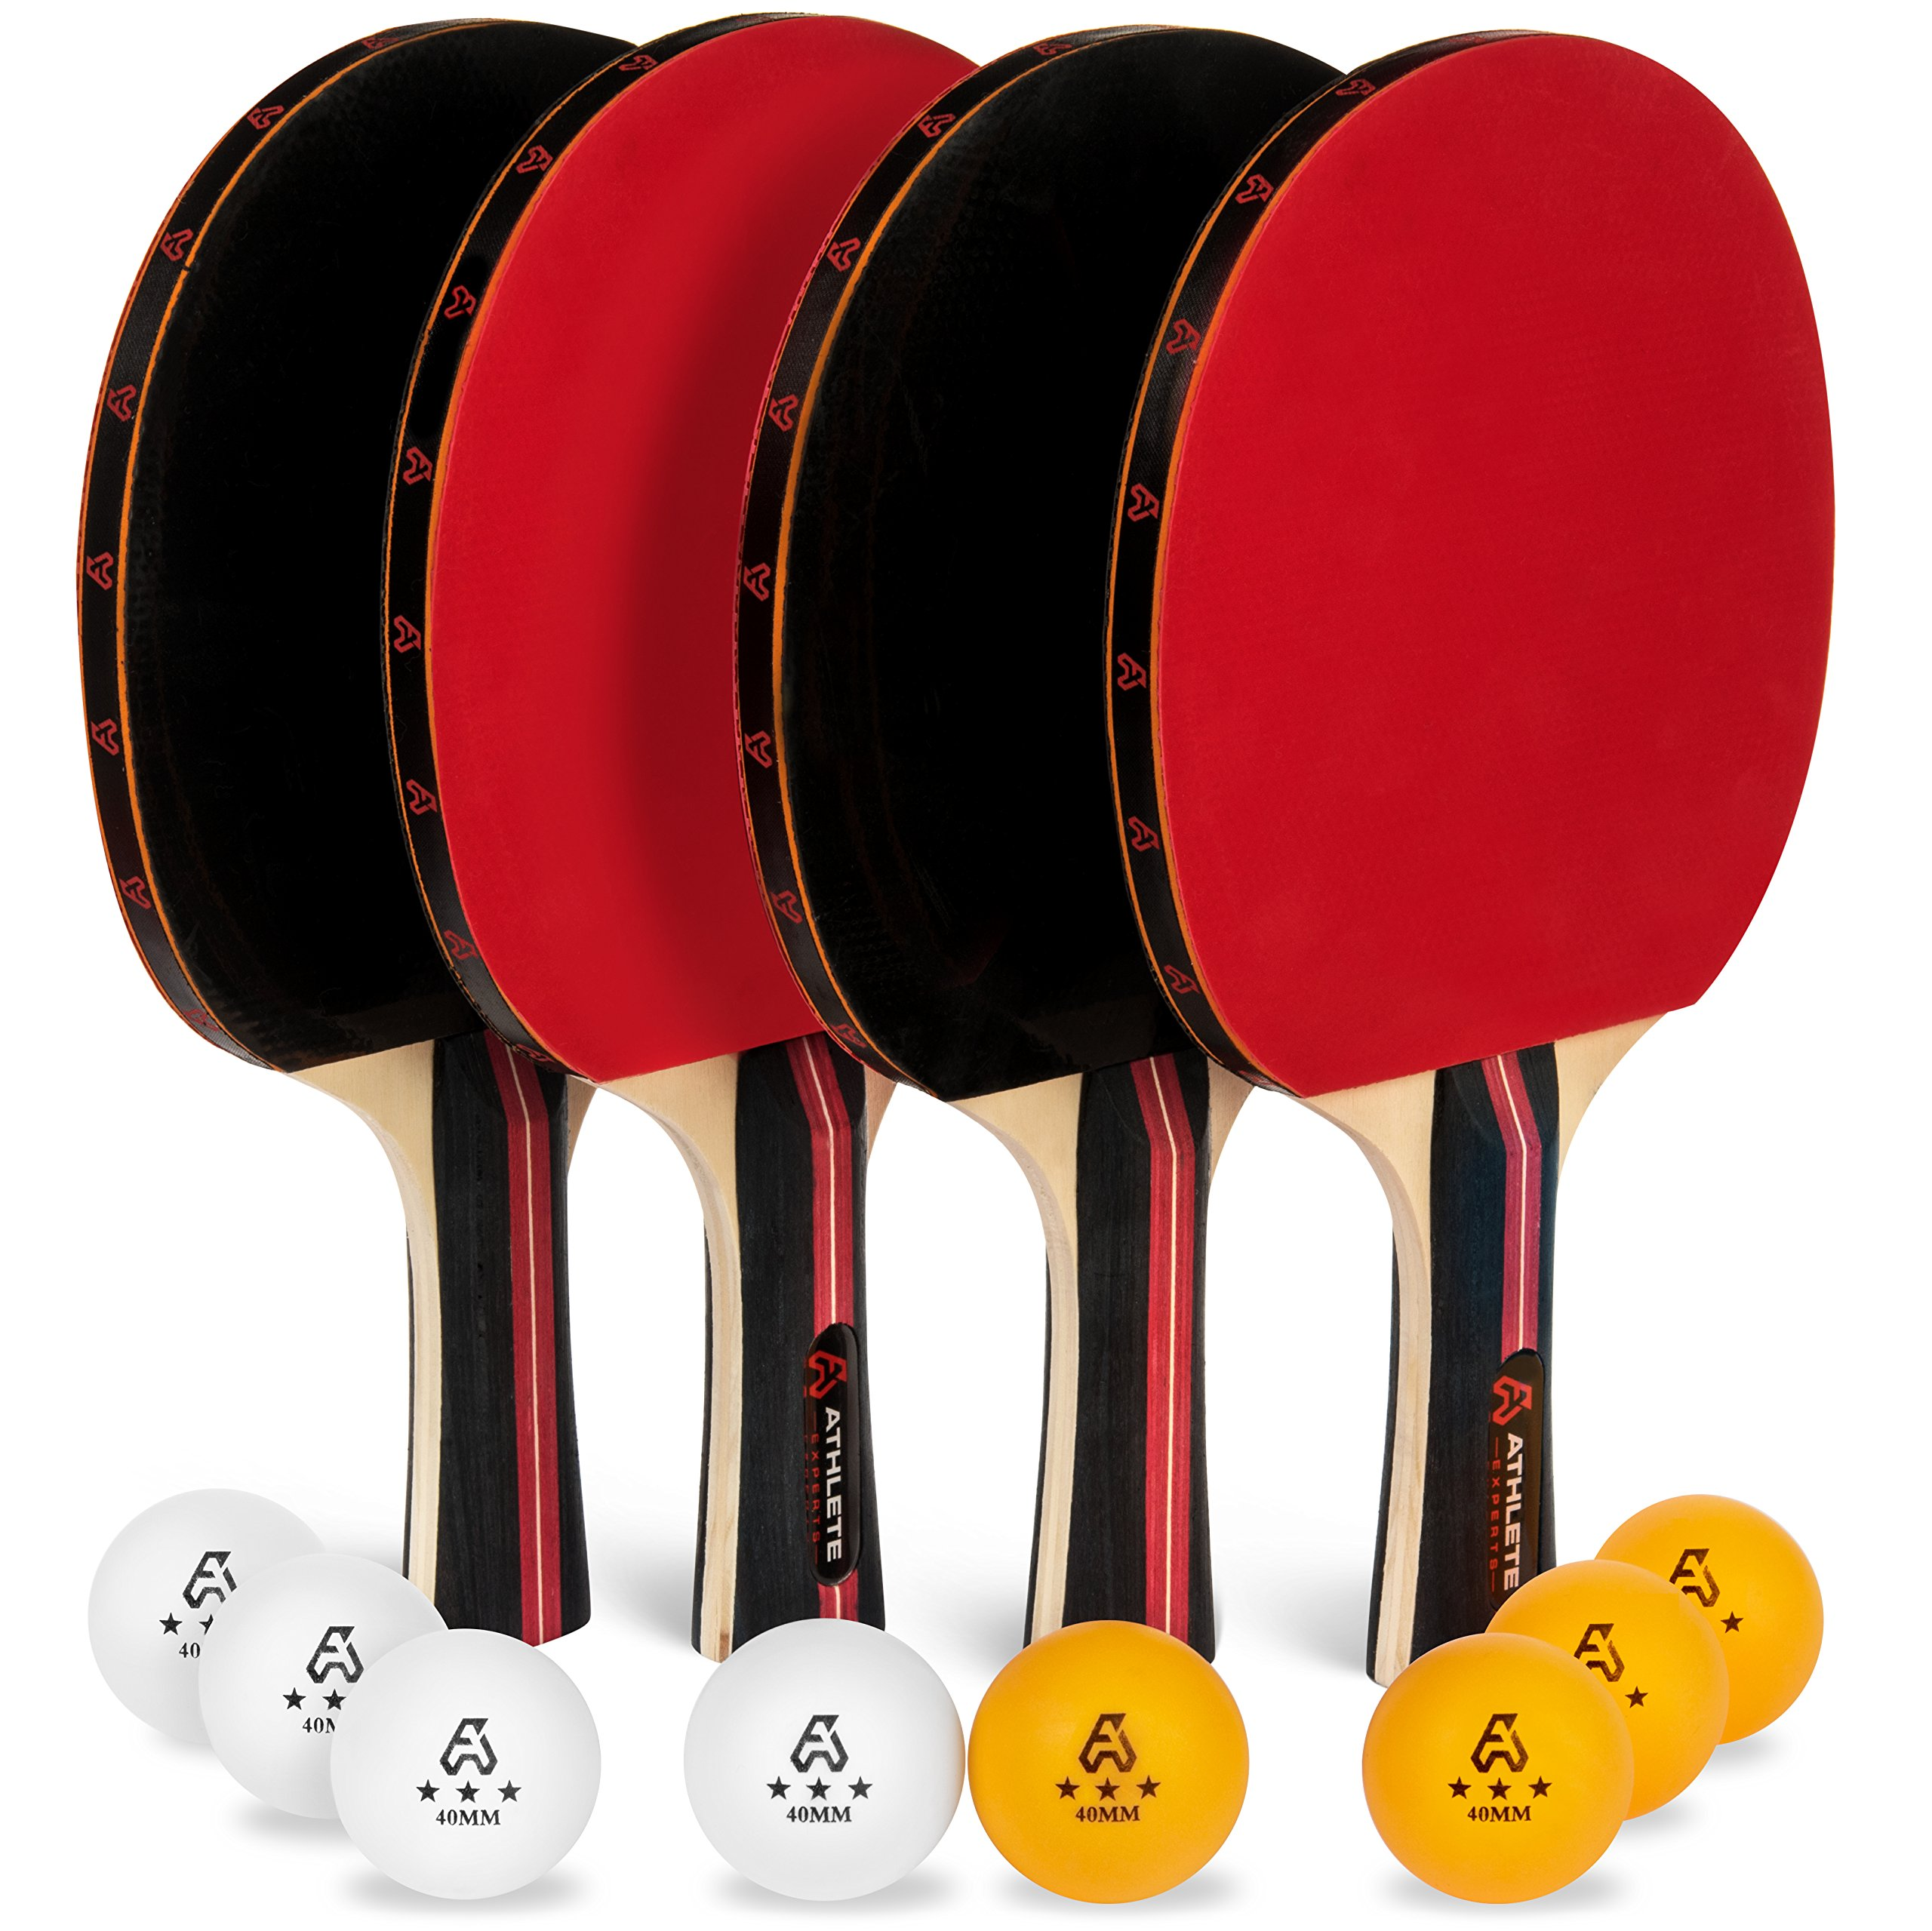 Athlete Experts Table Tennis Set - 4 All Wood Flared Handle Ping Pong Paddles and 8 Quality 40mm 3-Star Balls - This Ping Pong Paddle Set is the Perfect Indoor Game Gift for Kids or Professionals